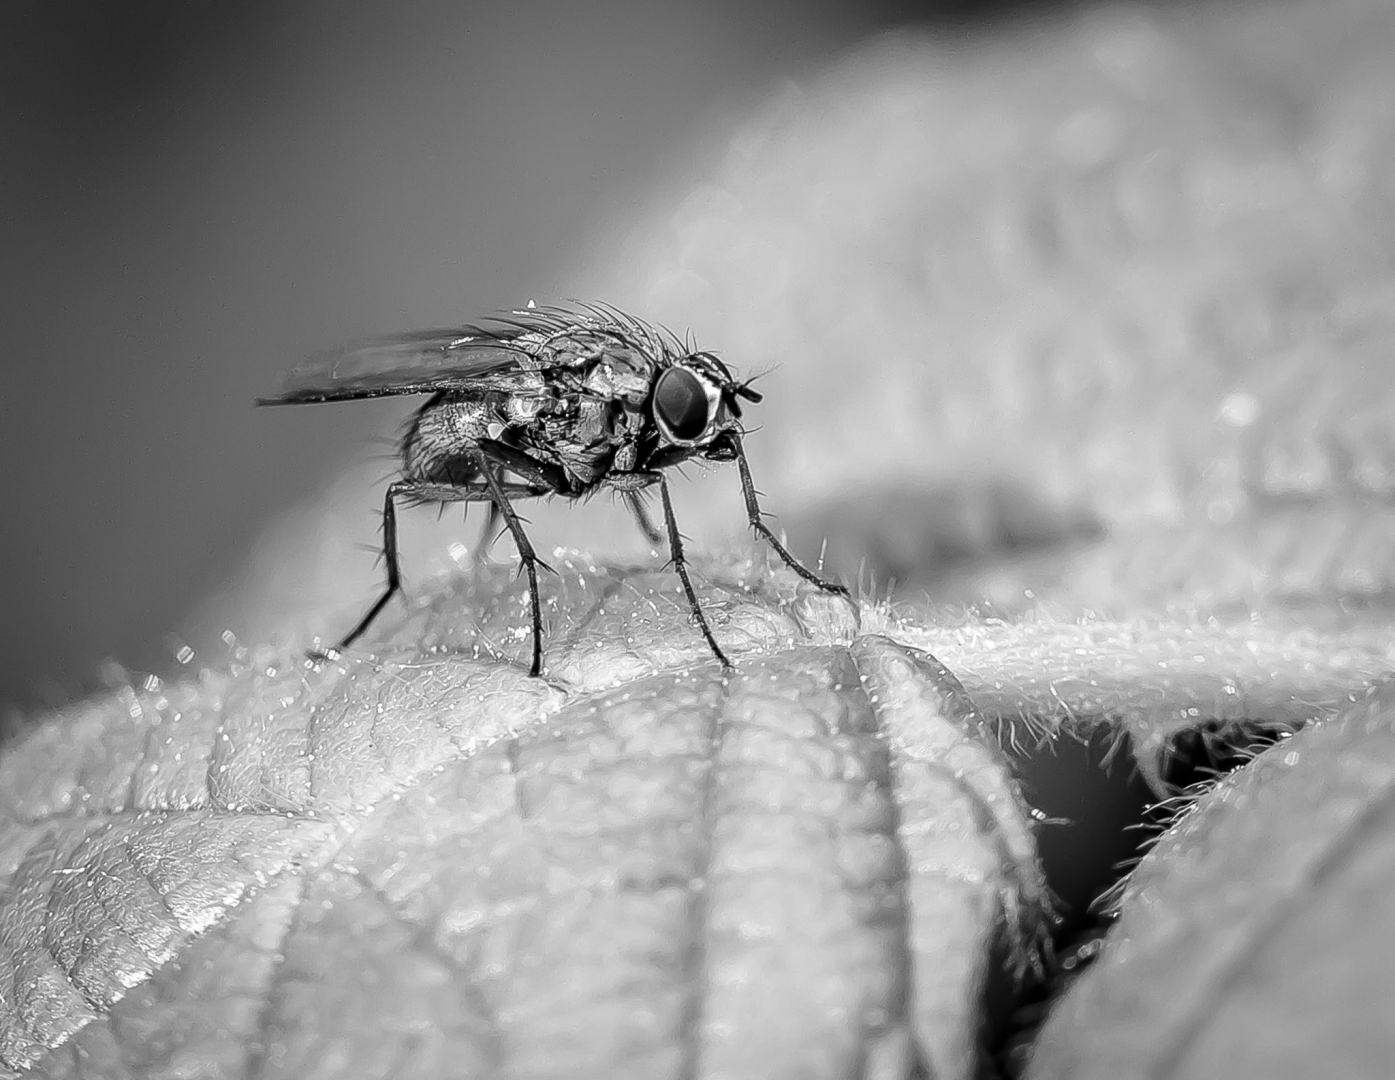 fly black and white close up macro photography detail small legs wings